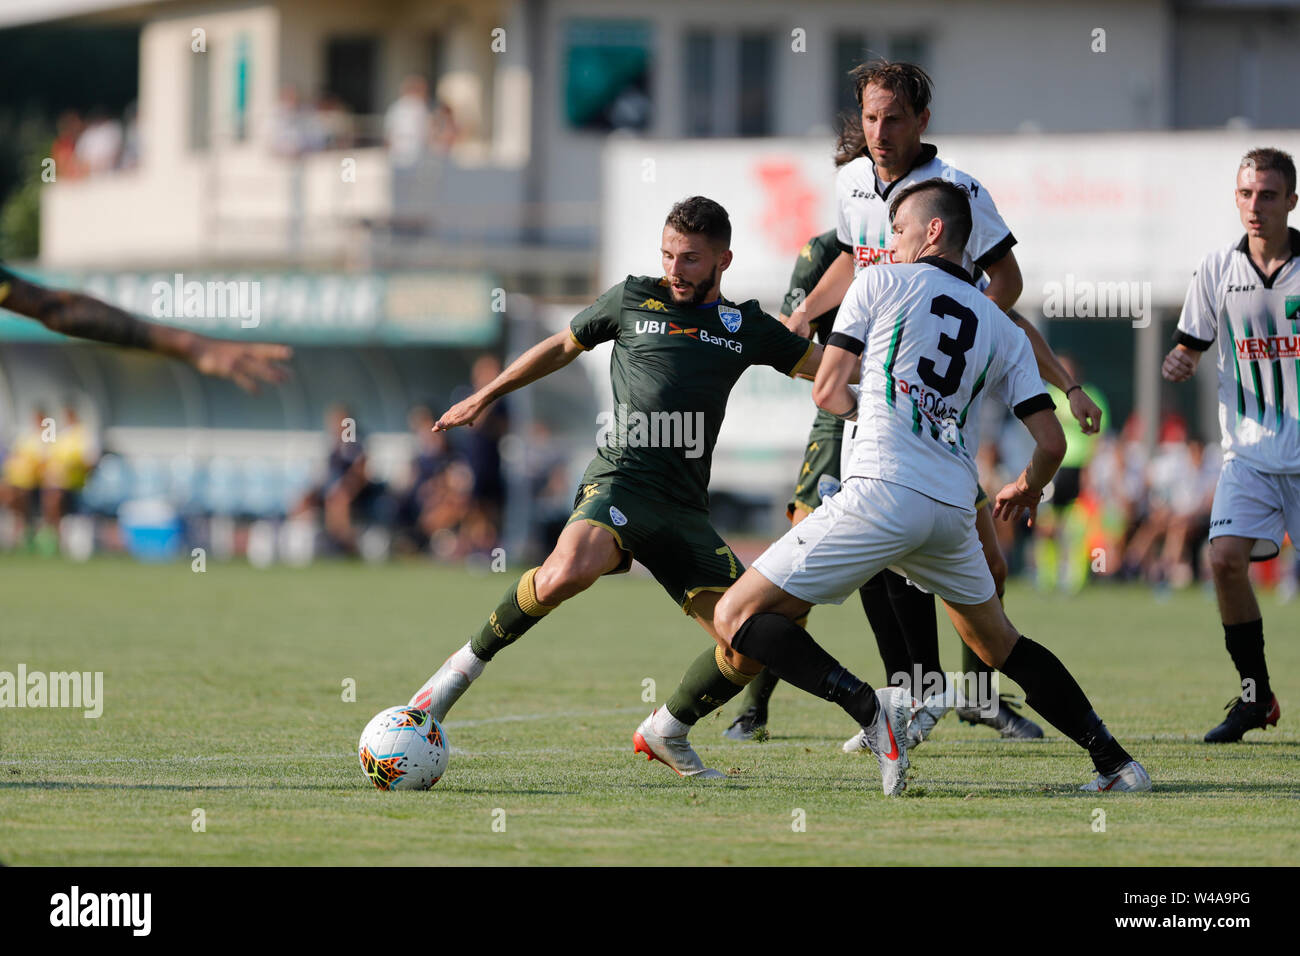 Darfo Boario, Italia. 21st July, 2019. Foto Stefano Nicoli/LaPresse21 luglio 2019 Darfo Boario (Bs), Italia sport calcio Amichevole Brescia Darfo Pre Campionato di calcio Serie A 2019/2020 - Nella foto: Nicholas Spalek Photo Stefano Nicoli/LaPresse July 20, 2019 Darfo Boario (Bs), Italy sport soccer Friendly match Brescia Darfo League A TIM 2019/2020 - In the pic: Nicholas Spalek Credit: LaPresse/Alamy Live News - Stock Image